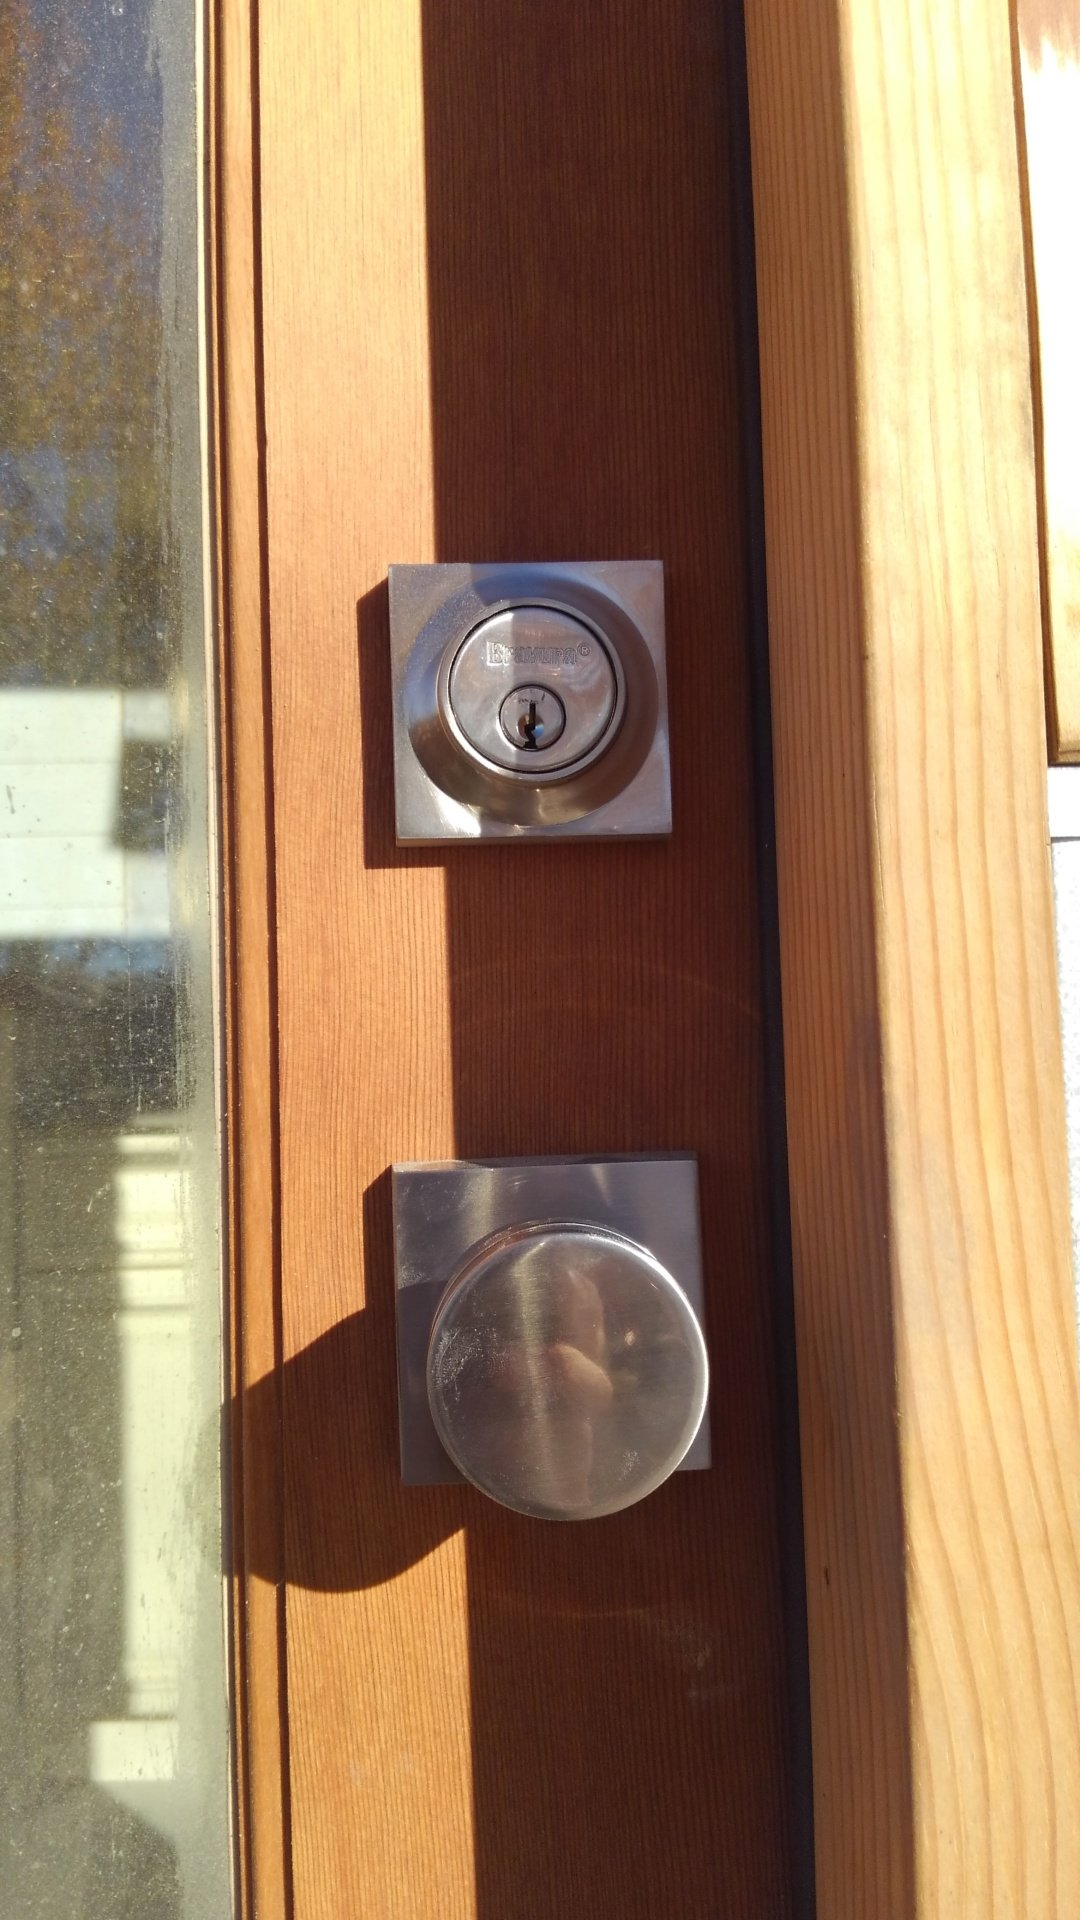 Knob and lock installed on front door